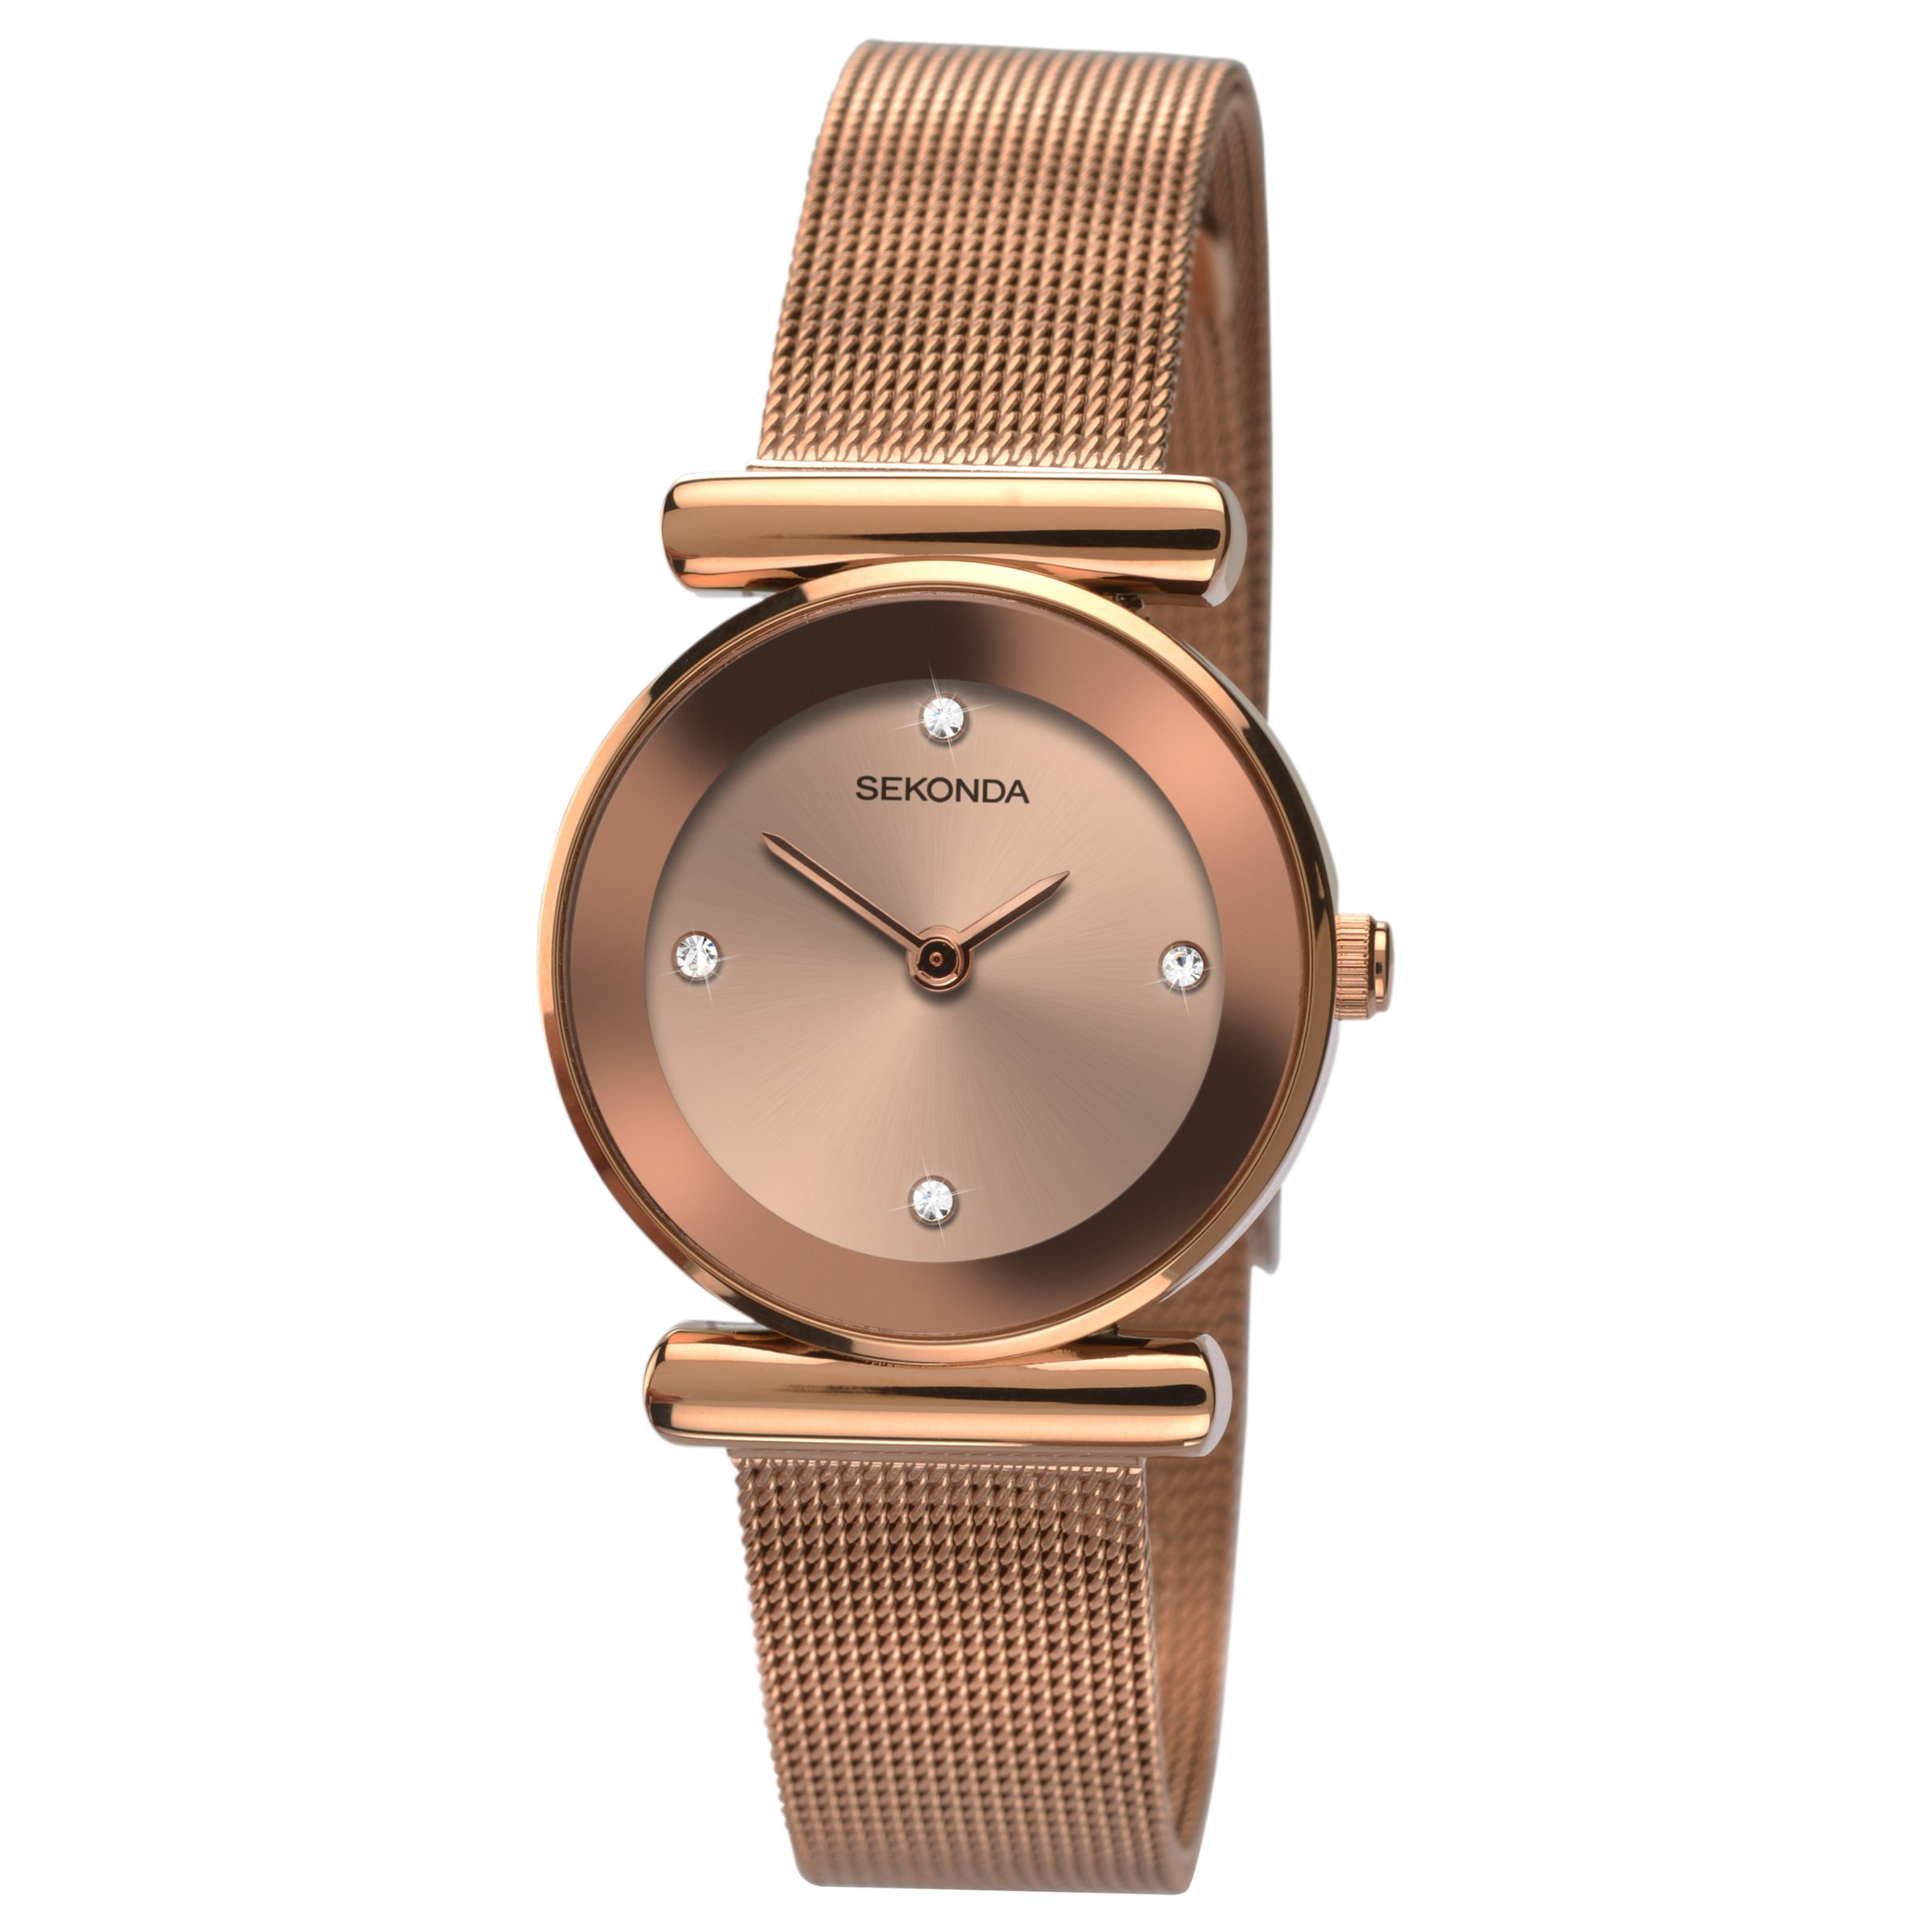 Sekonda Sekonda 2301.27 Women's Mesh Bracelet Strap Watch, Rose Gold